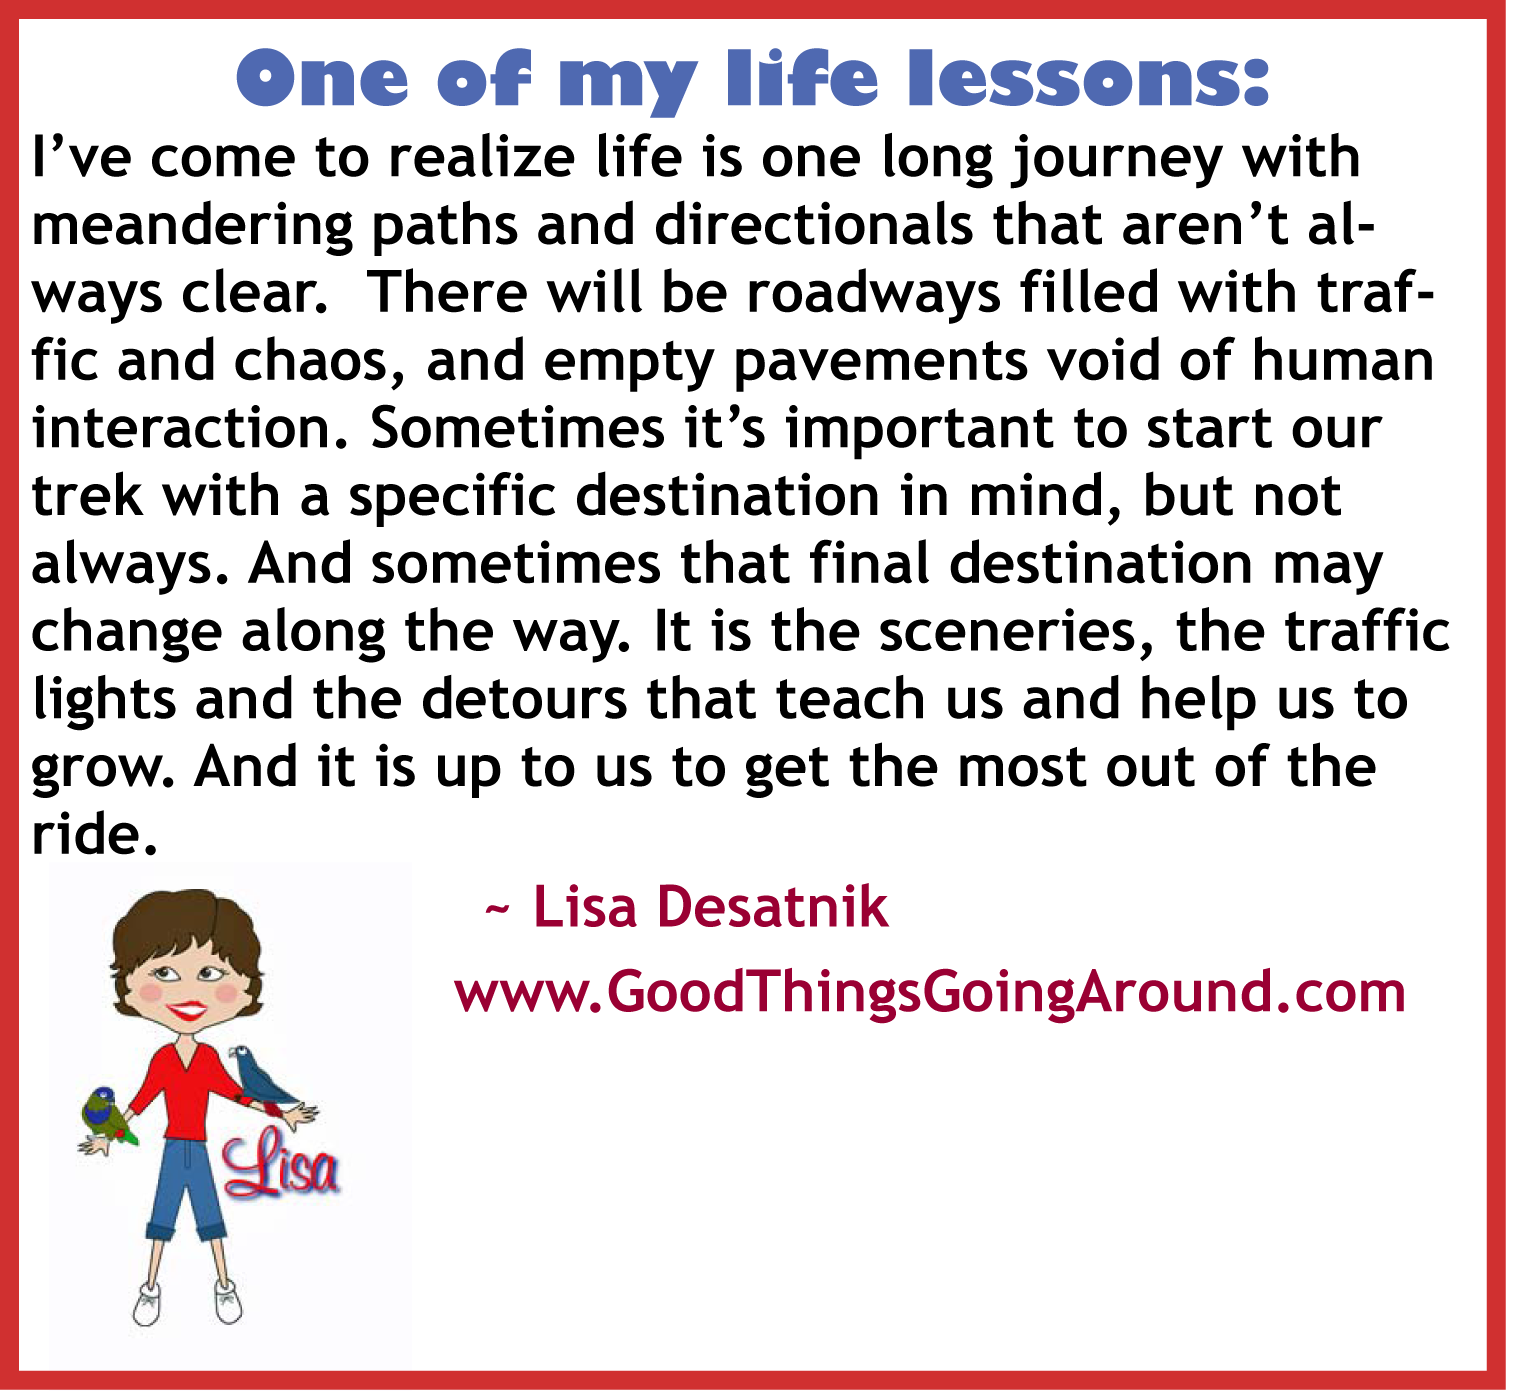 a lesson for life analysis and Biology lesson plans, labs, activities, experiments, and projects for high school life science teachers free science curriculum from lesson plans inc.